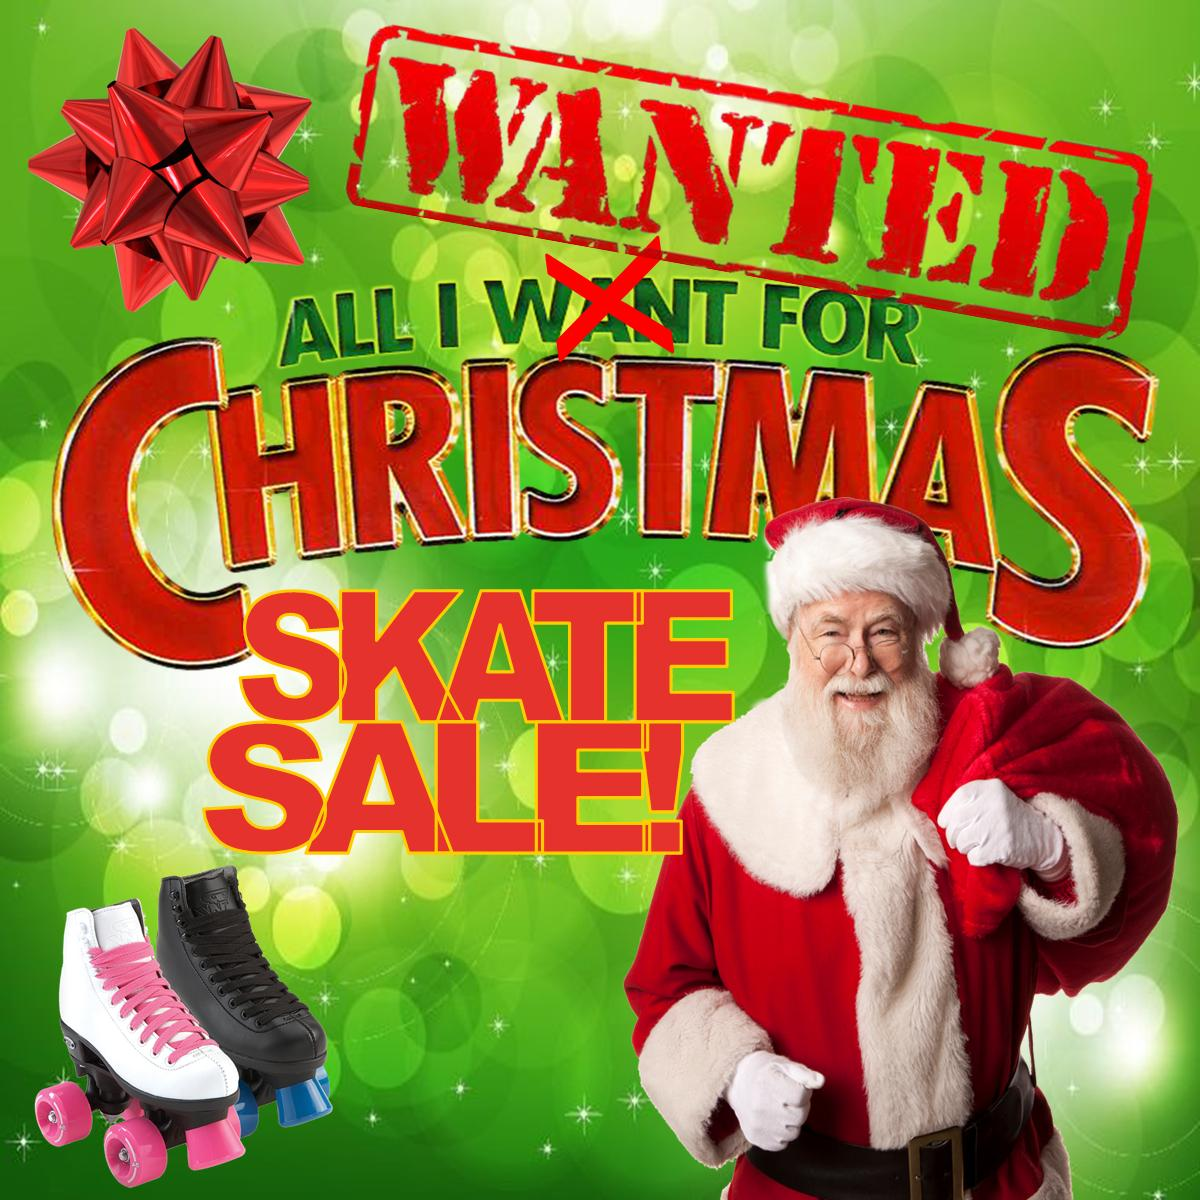 Christmas Holiday Events In Muskegon Mi 2020 ALL I WANTED FOR CHRISTMAS SKATE SALE – CLICK HERE – Jumpin